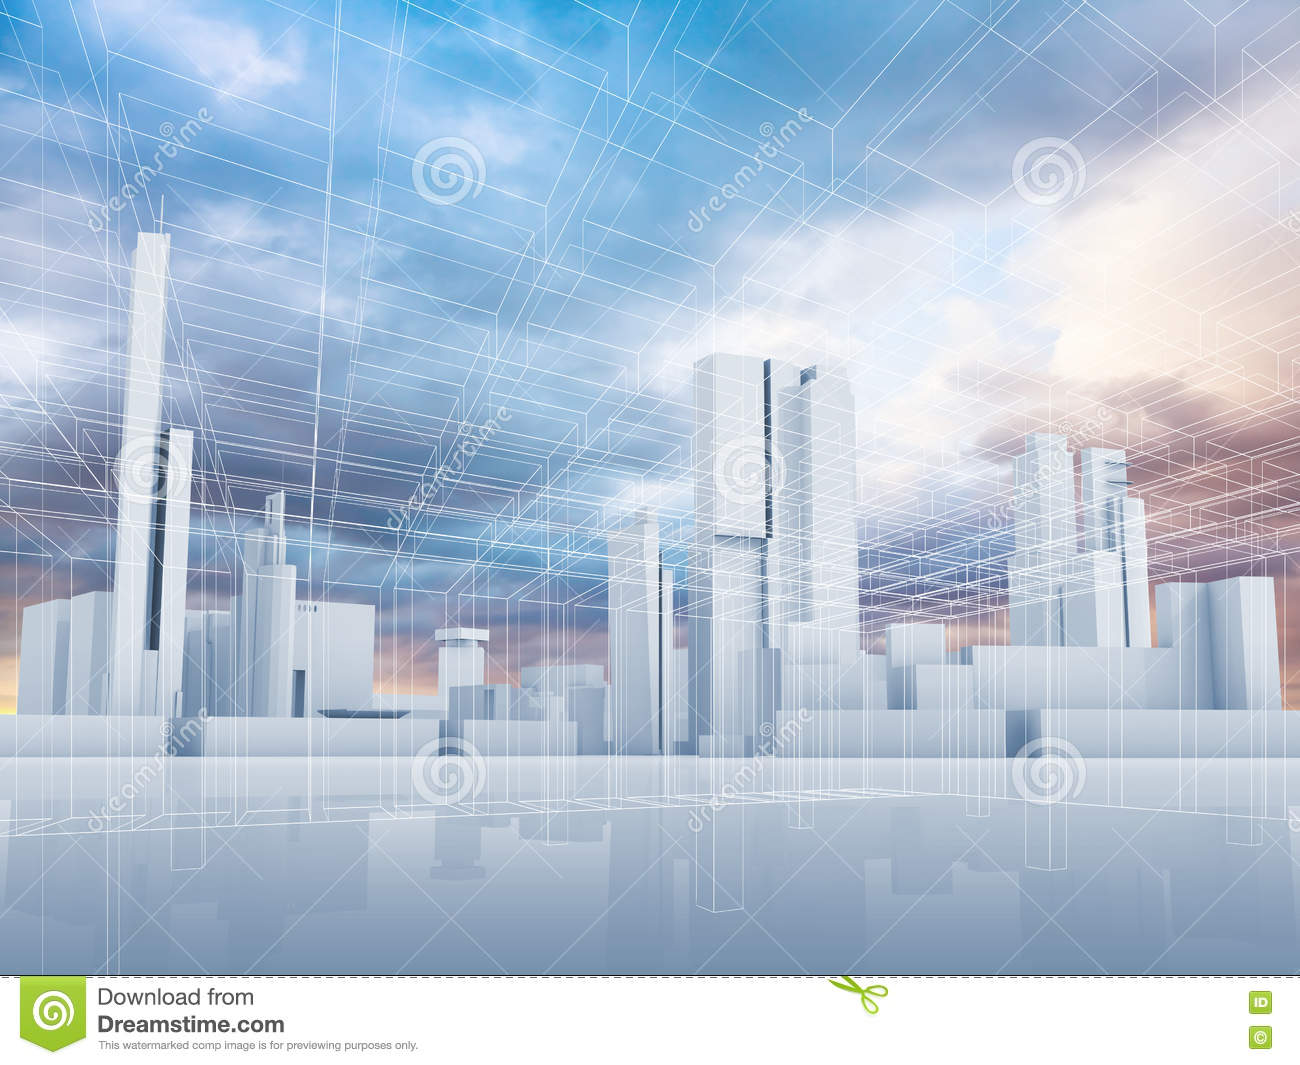 download abstract contemporary city background 3 d stock illustration illustration of illustration dramatic